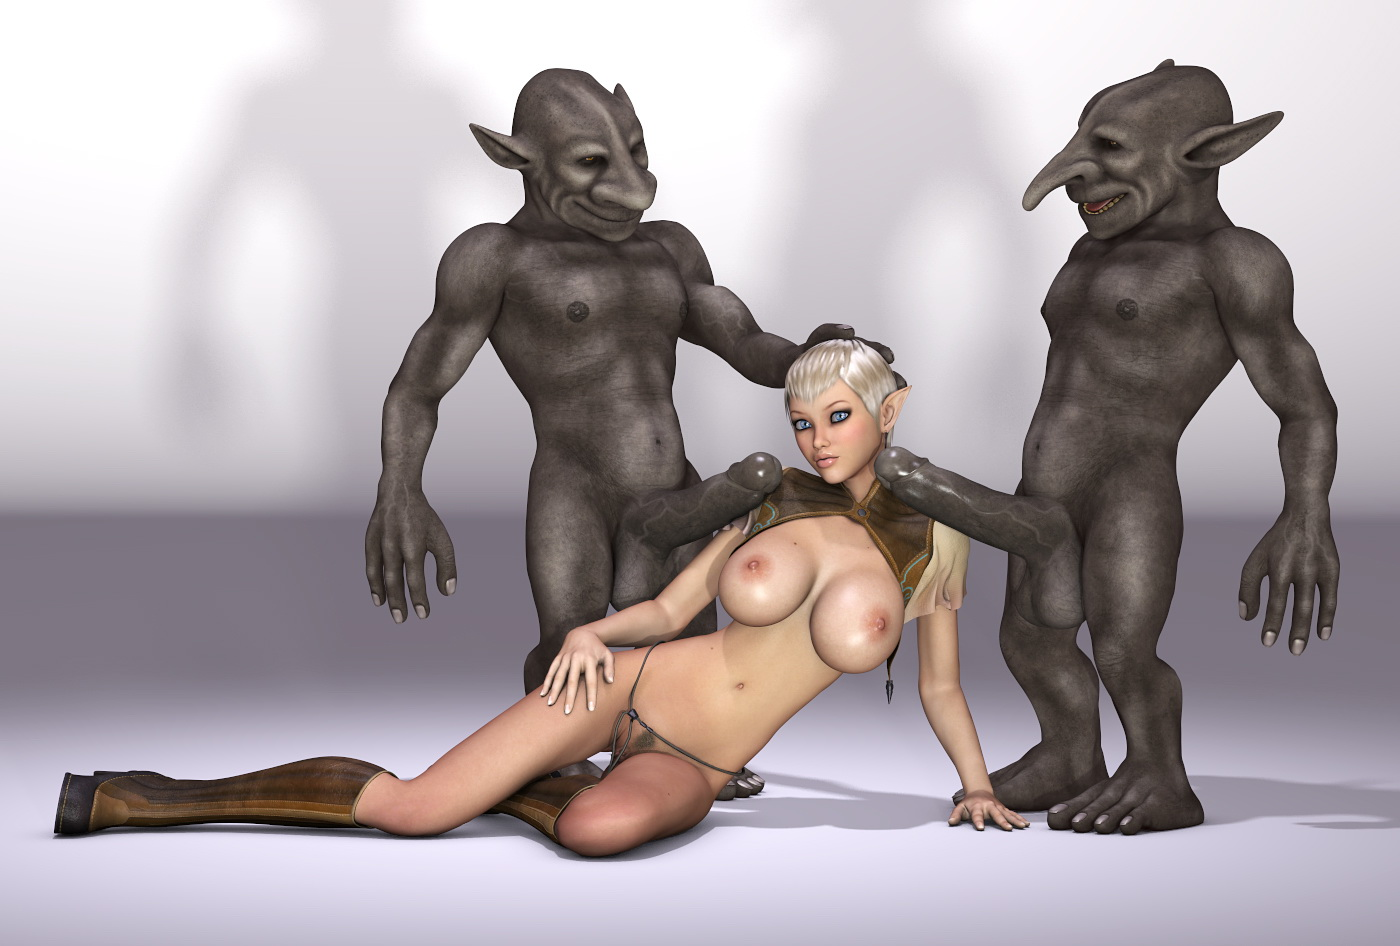 3d sex games megaupload erotic gallery